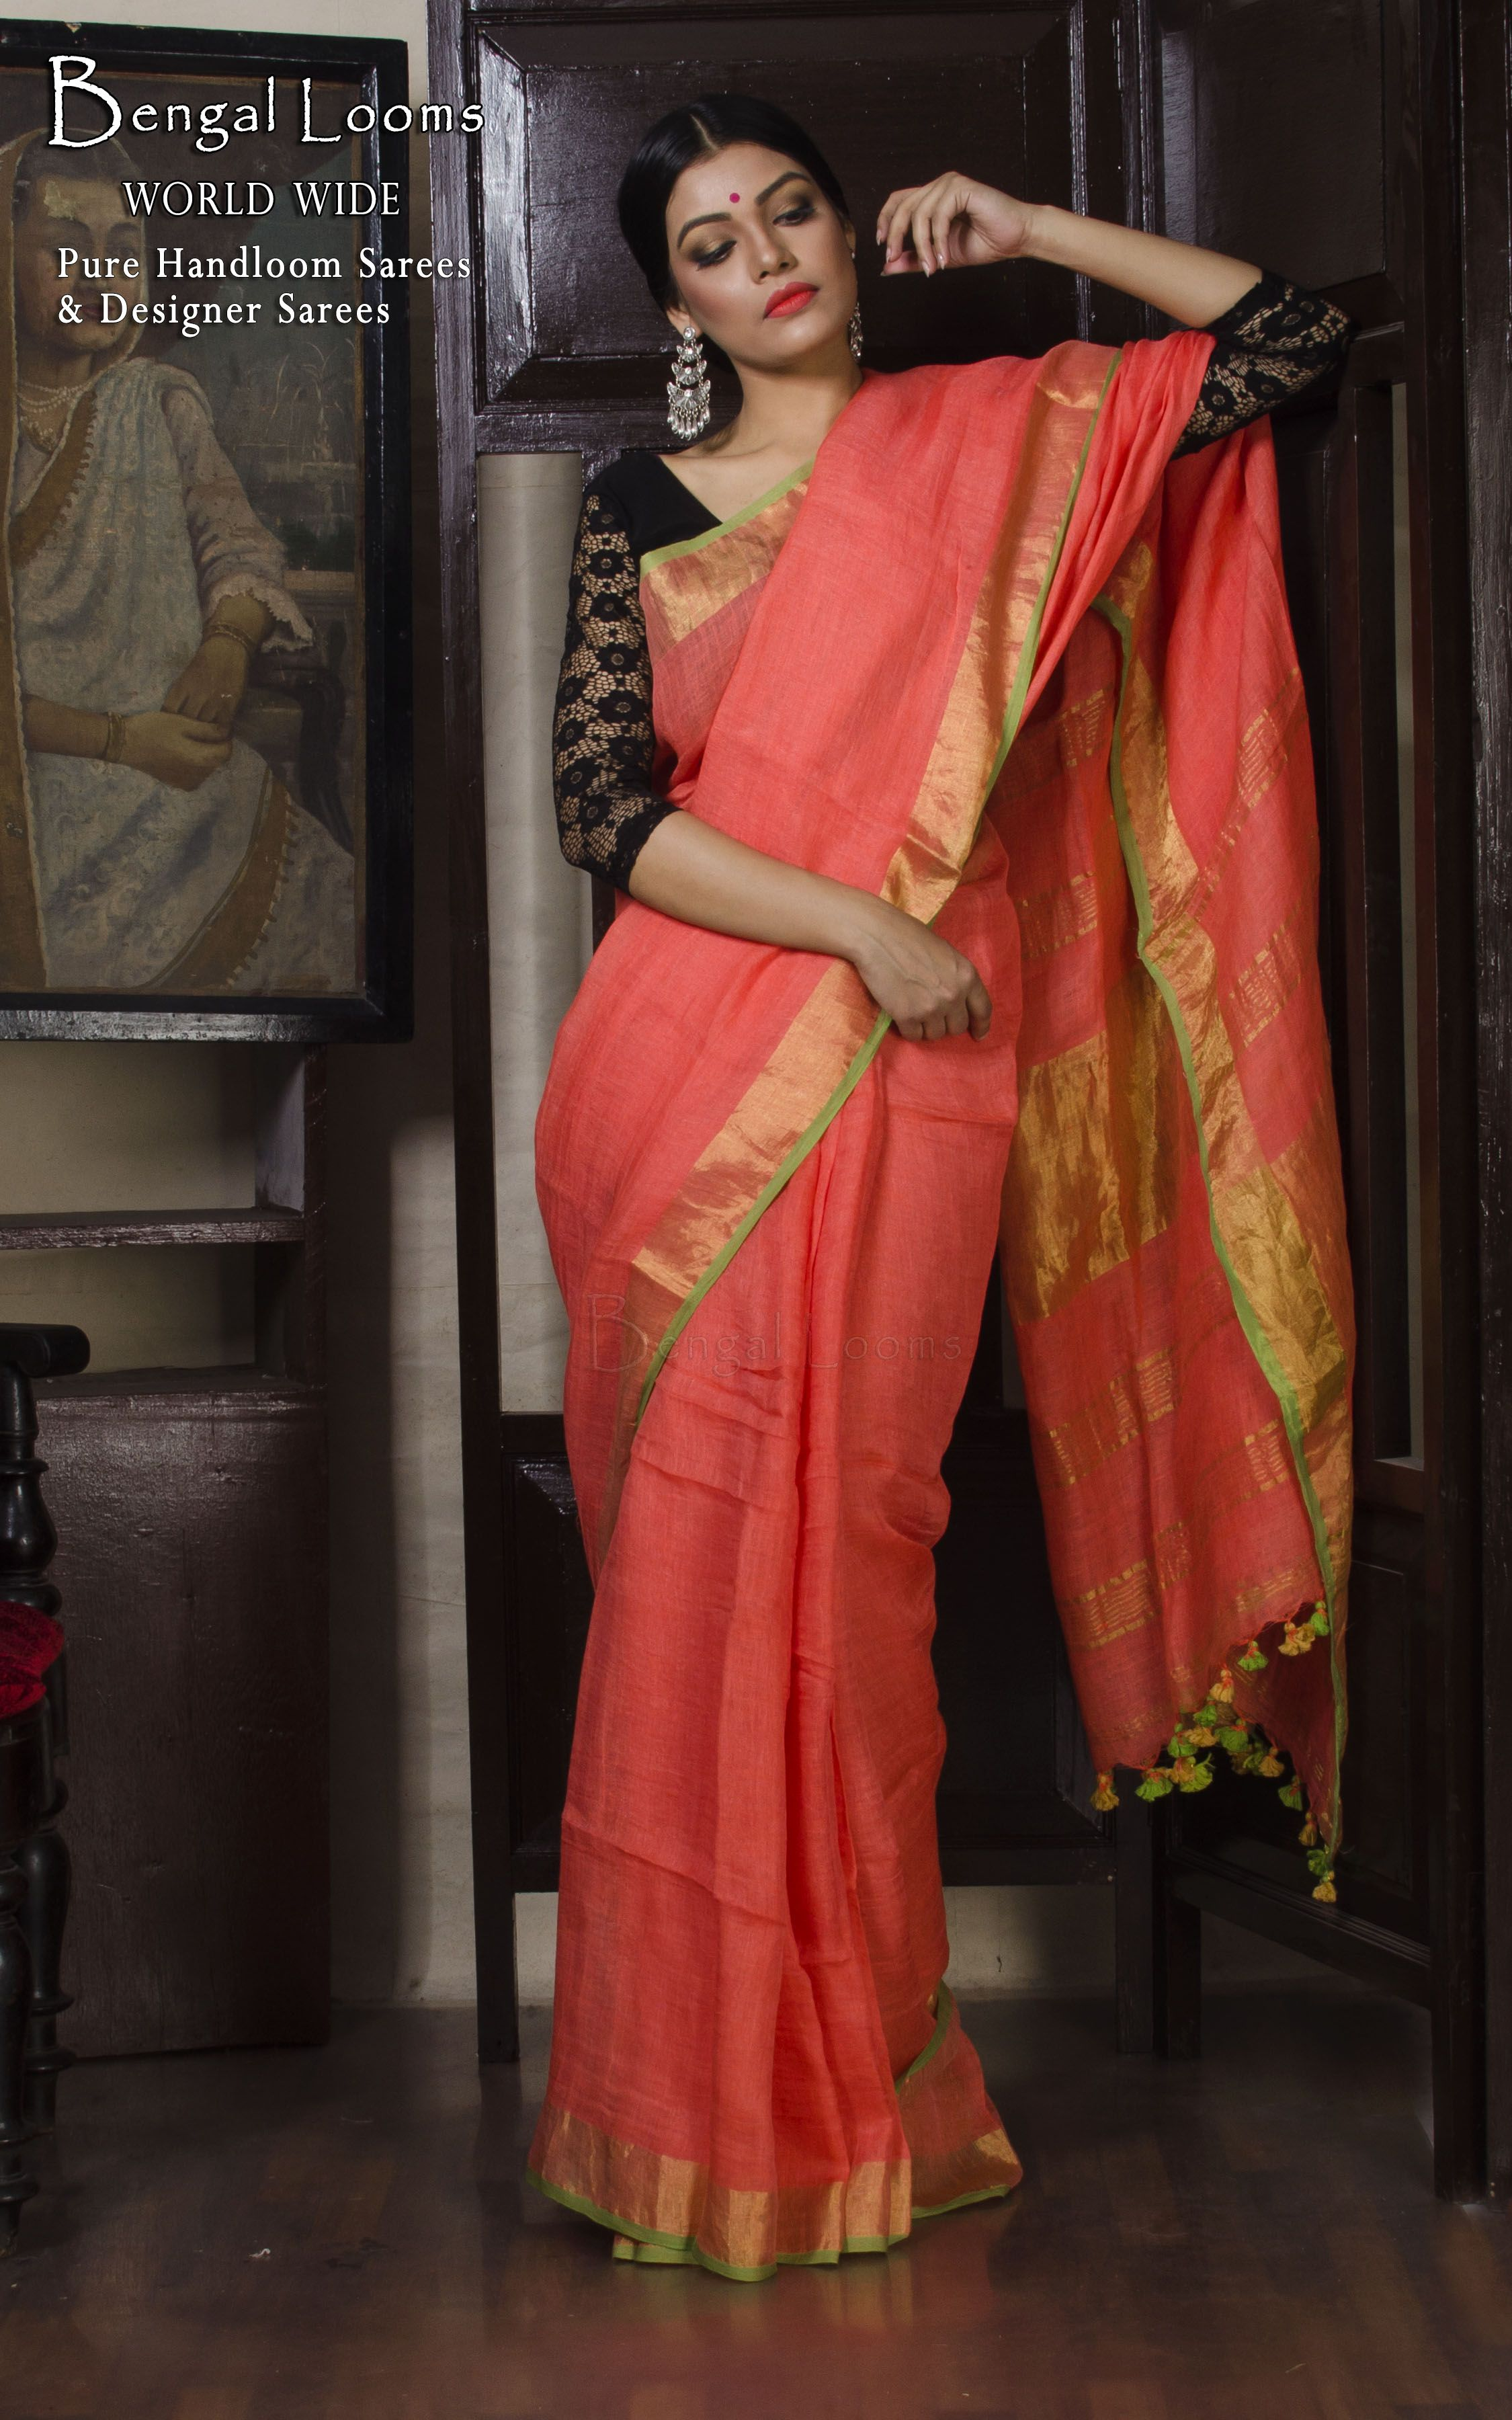 dc6671125 Linen Saree with Antique Gold Zari Border in Peach and Green